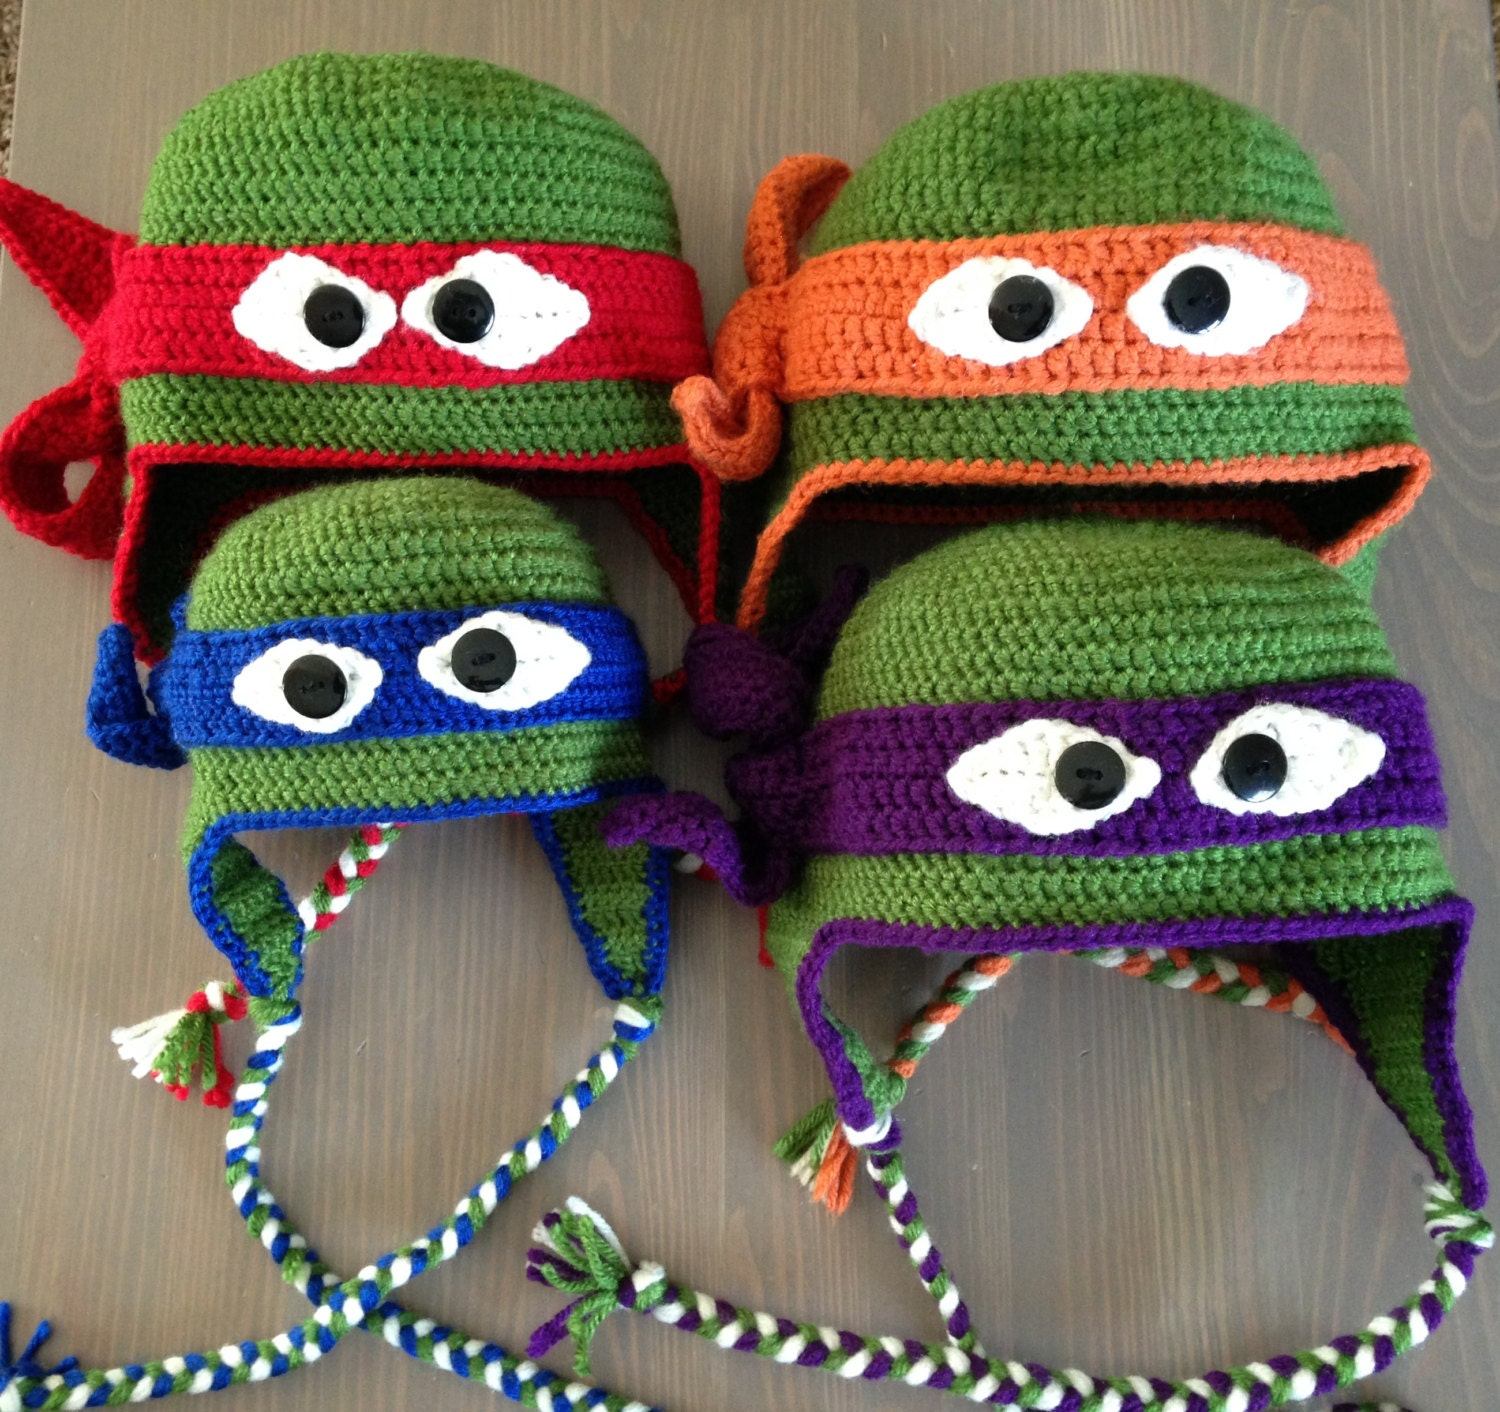 Free Crochet Patterns For Ninja Turtle Hat : Teenage Mutant Ninja Turtles Hat-Adult